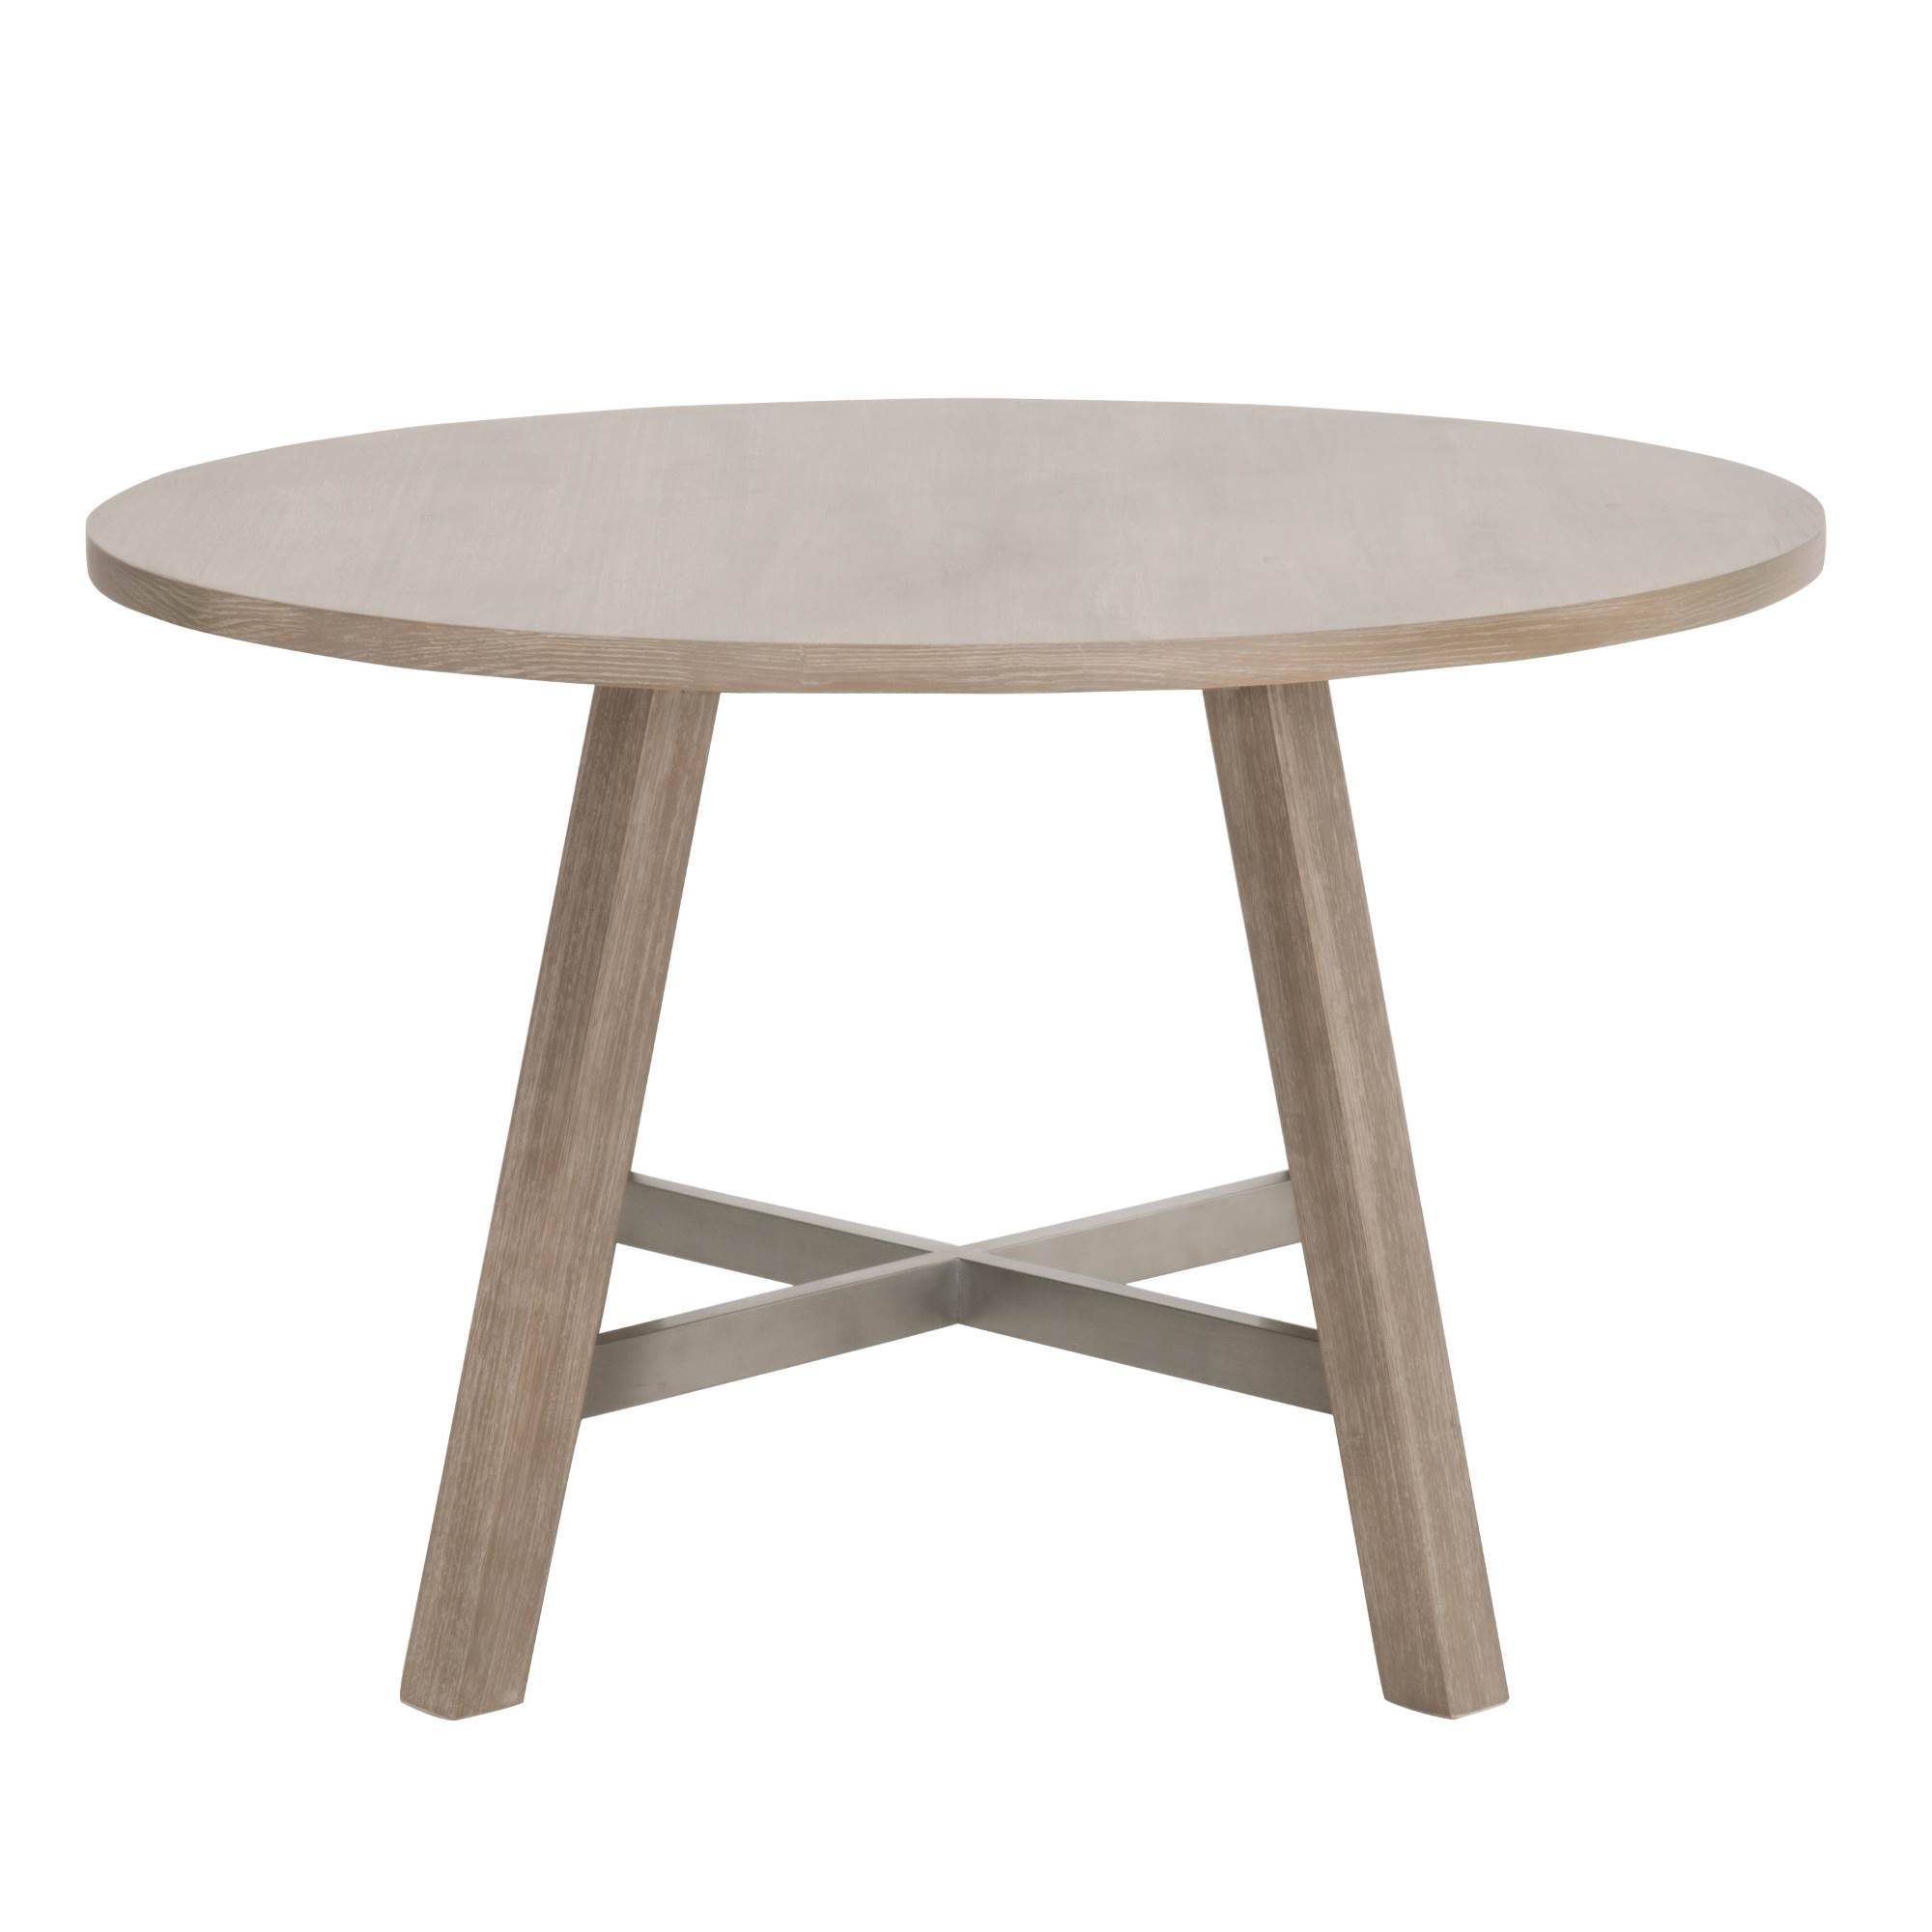 Essentials For Living Cross Natural Gray 47 Inch Round Dining Table